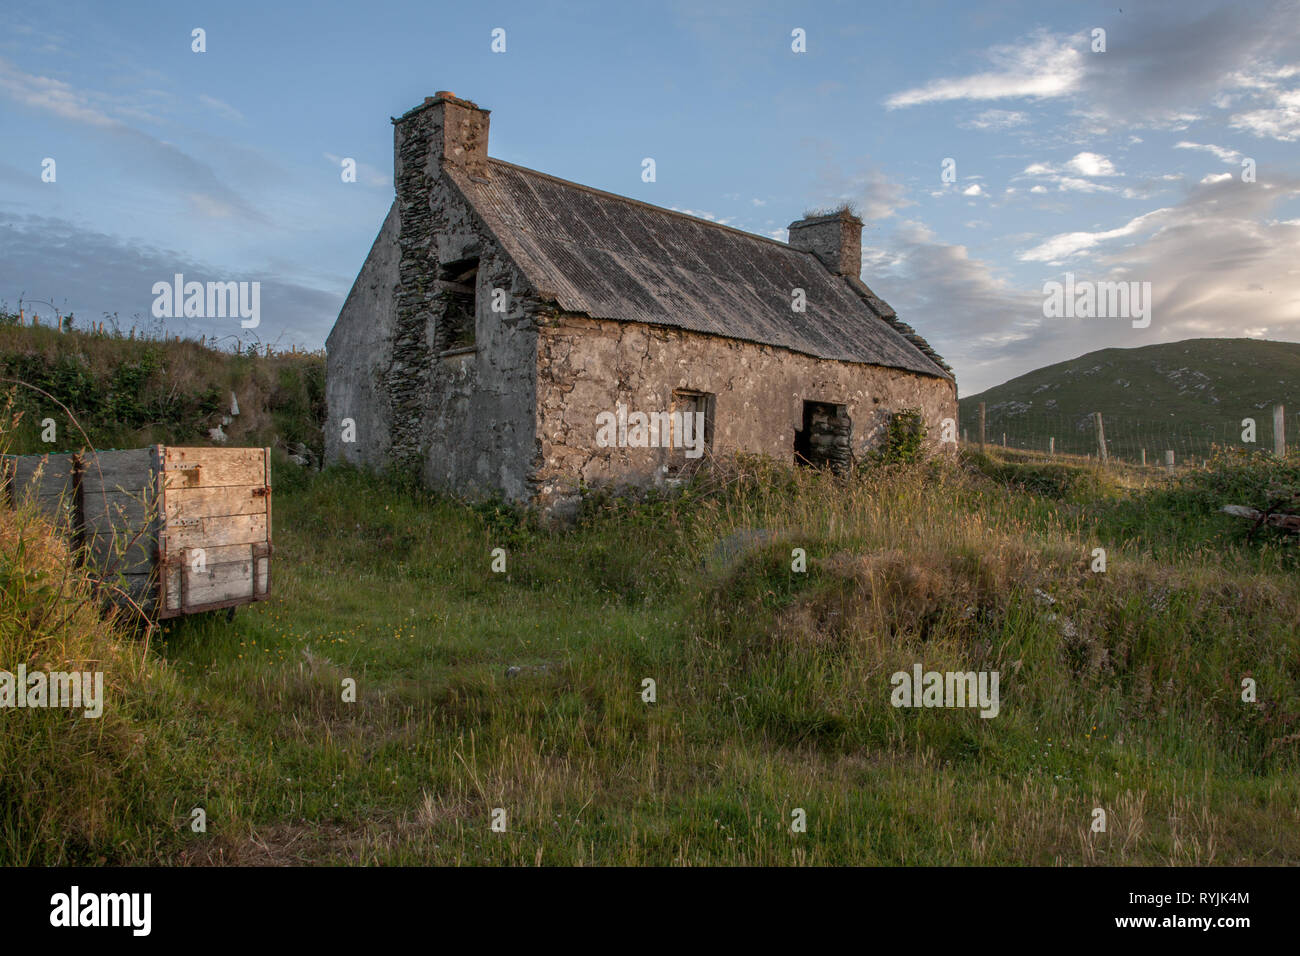 Dursey Island, Cork, Ireland. 18th June, 2016  An old abandoned home in the townland of Kilmichael on Dursey Island, Co. Cork, Ireland. - Stock Image